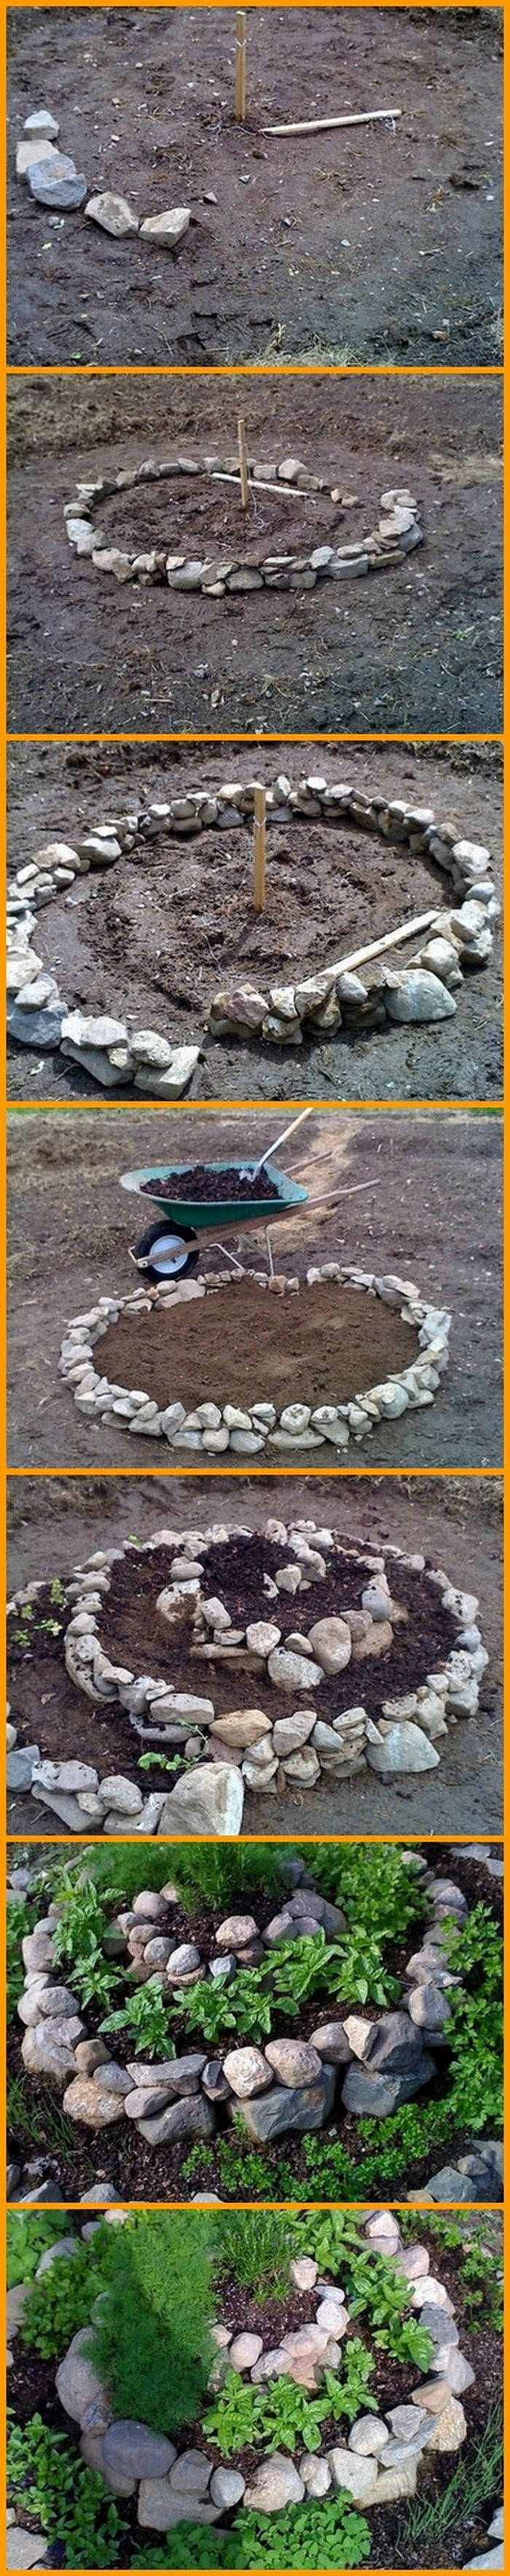 This is an interesting way of growing herbs in your garden. View the full album of this spiral planter here: http://theownerbuildernetwork.co/jtqu What type of herbs do you want to grow in your garden?